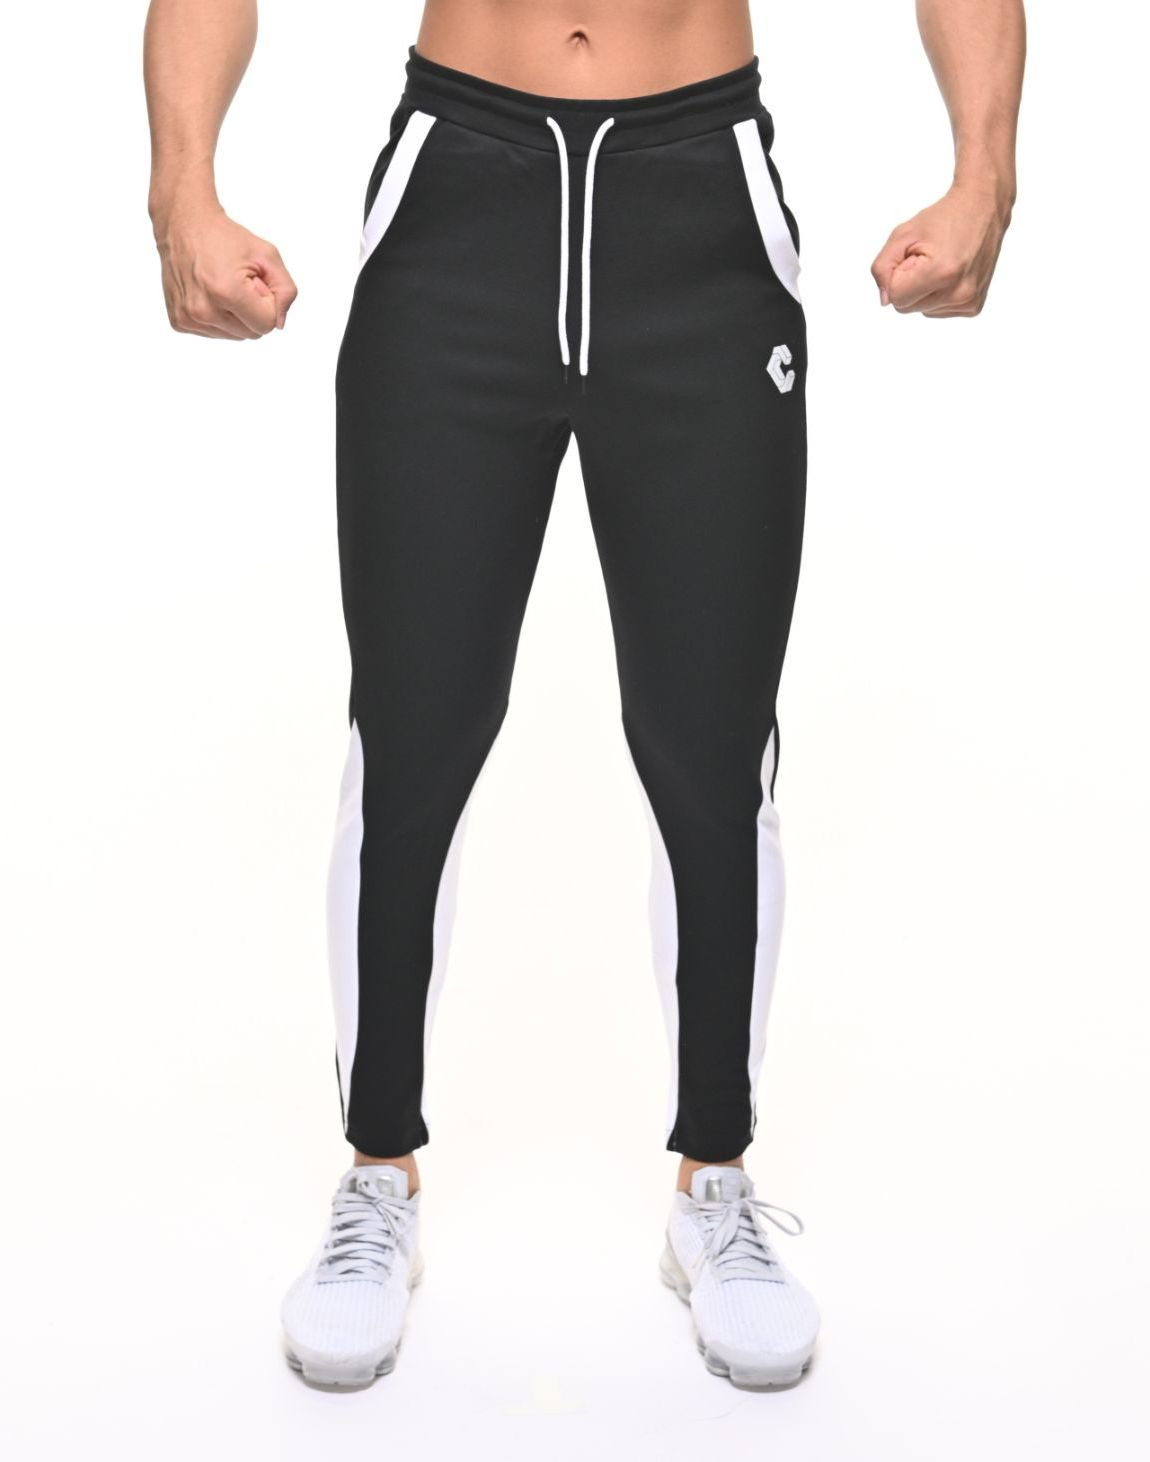 <img class='new_mark_img1' src='https://img.shop-pro.jp/img/new/icons1.gif' style='border:none;display:inline;margin:0px;padding:0px;width:auto;' />CRNS CALF SHAPE LINE PANTS【BLACK】